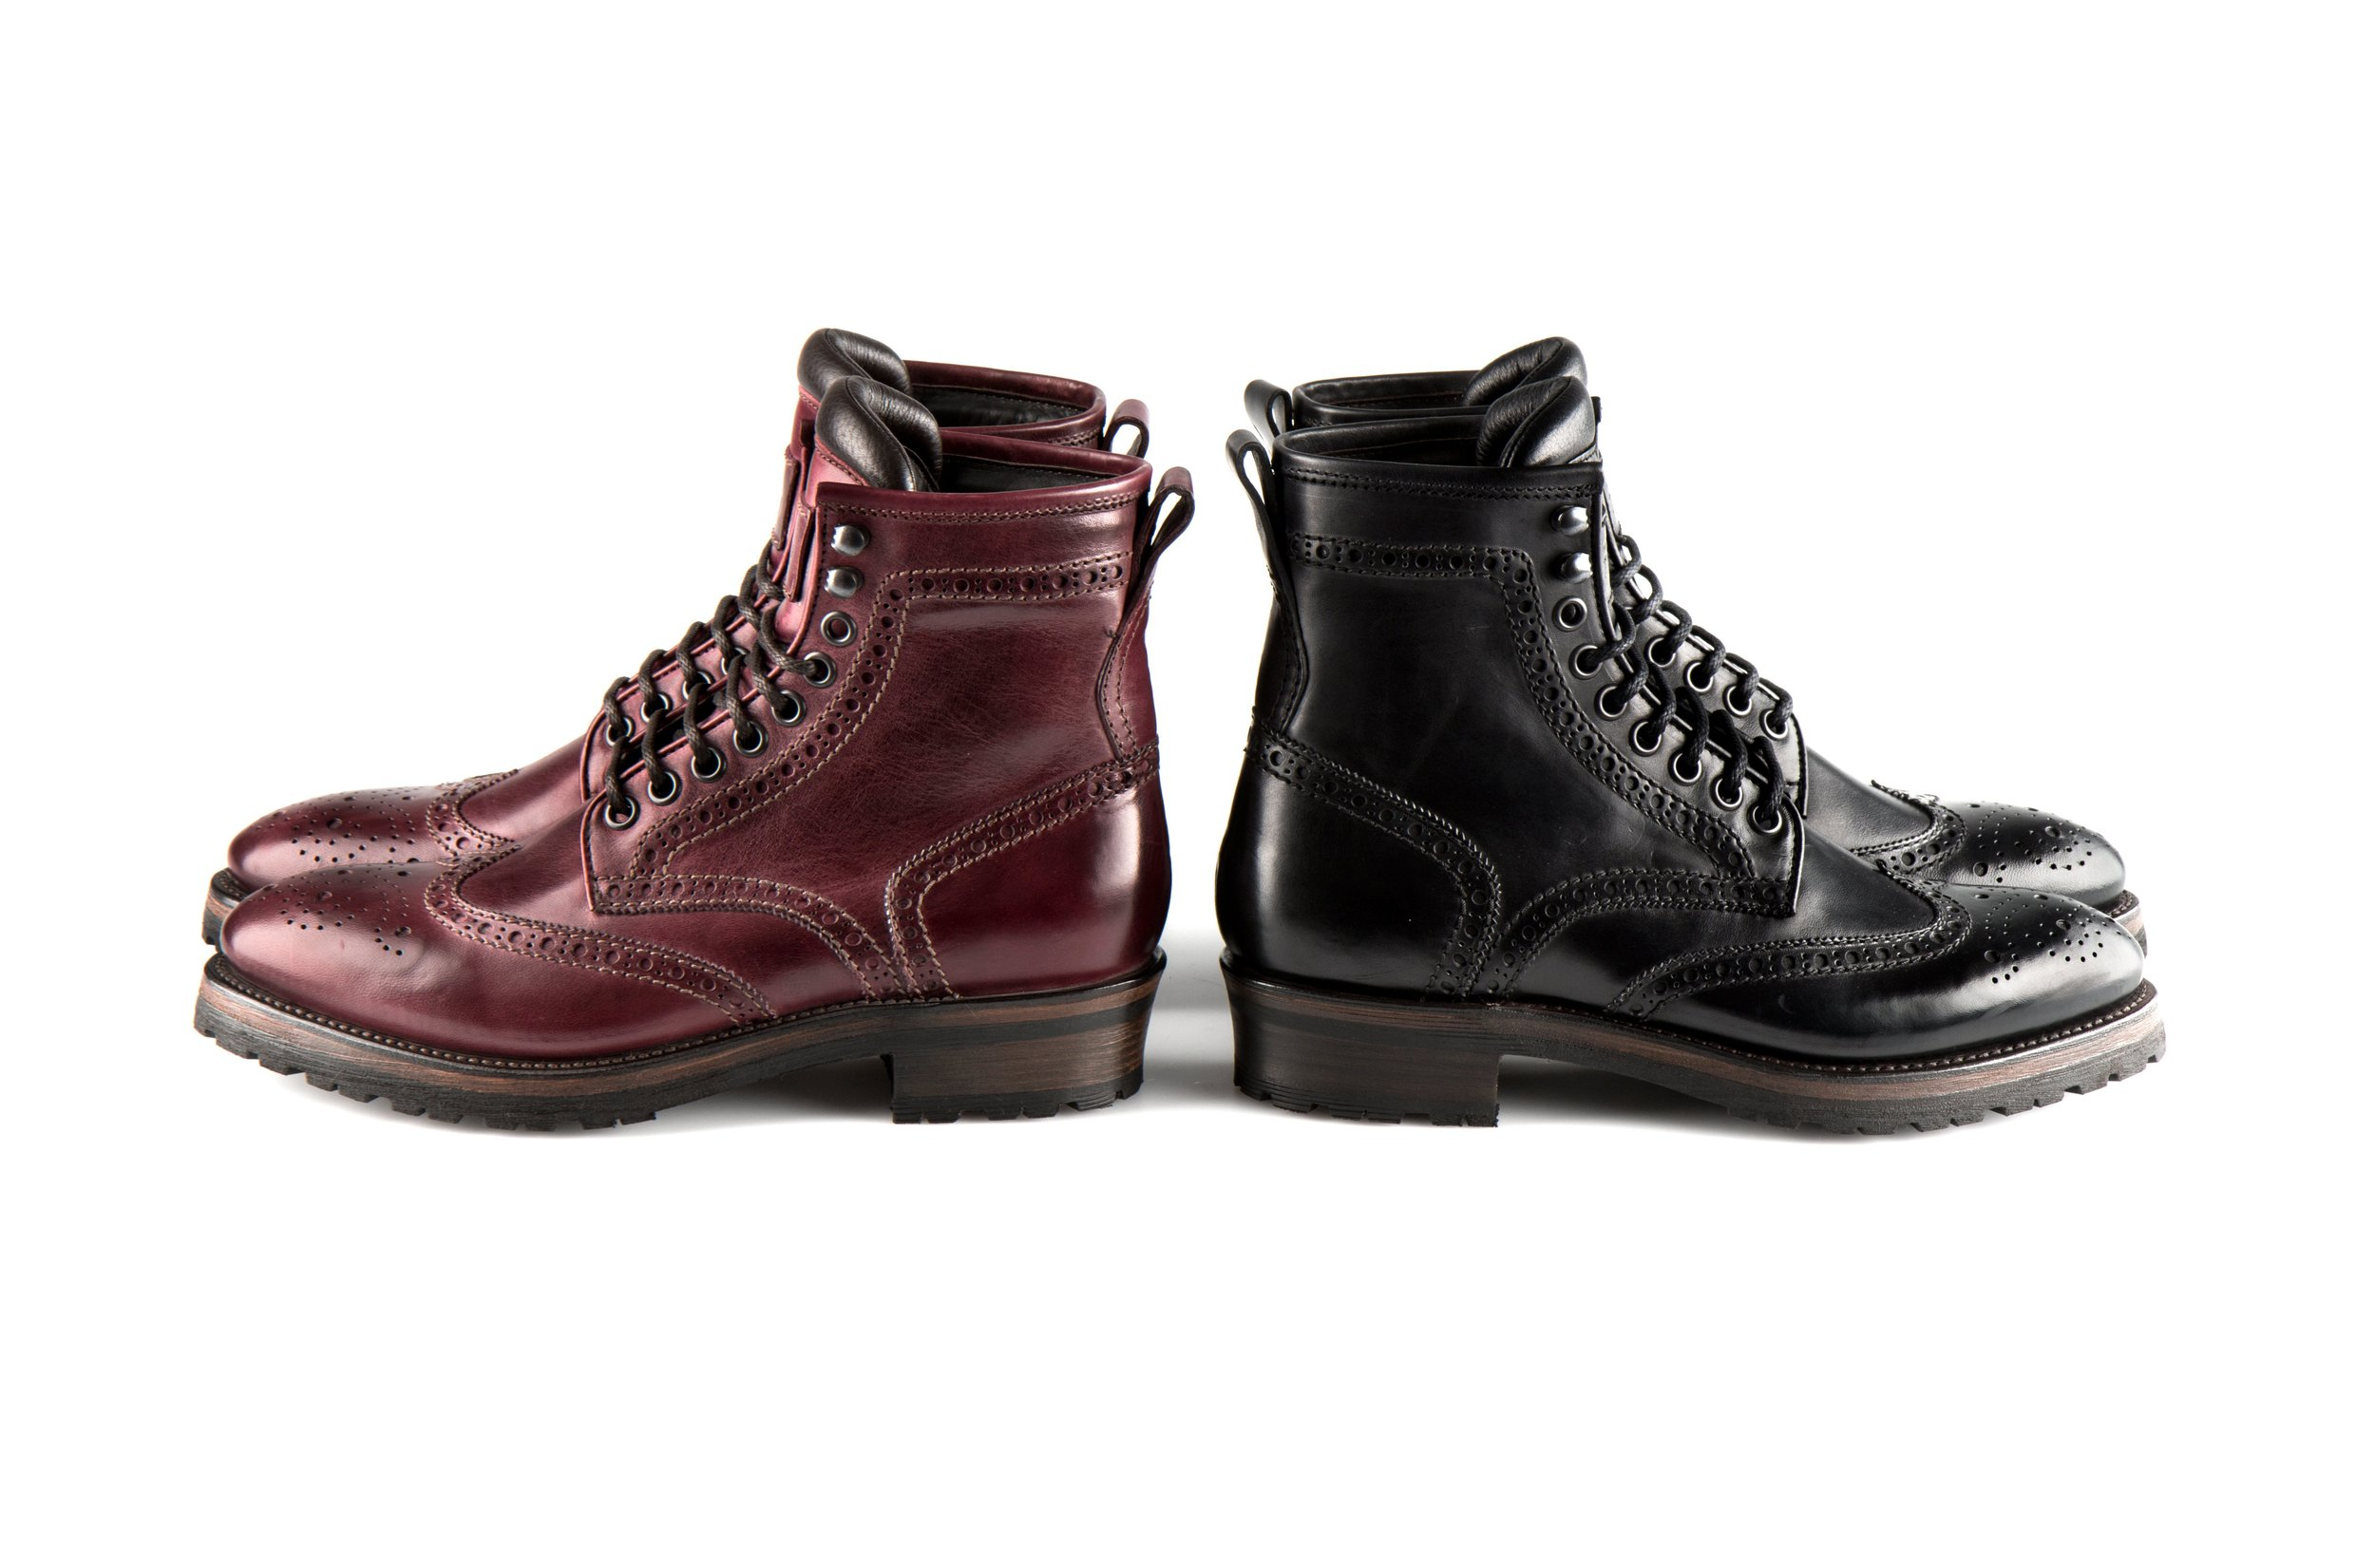 Shoes from Project Twlv, a like-minded brand that focuses on craftsmanship and high quality Italien leather boots